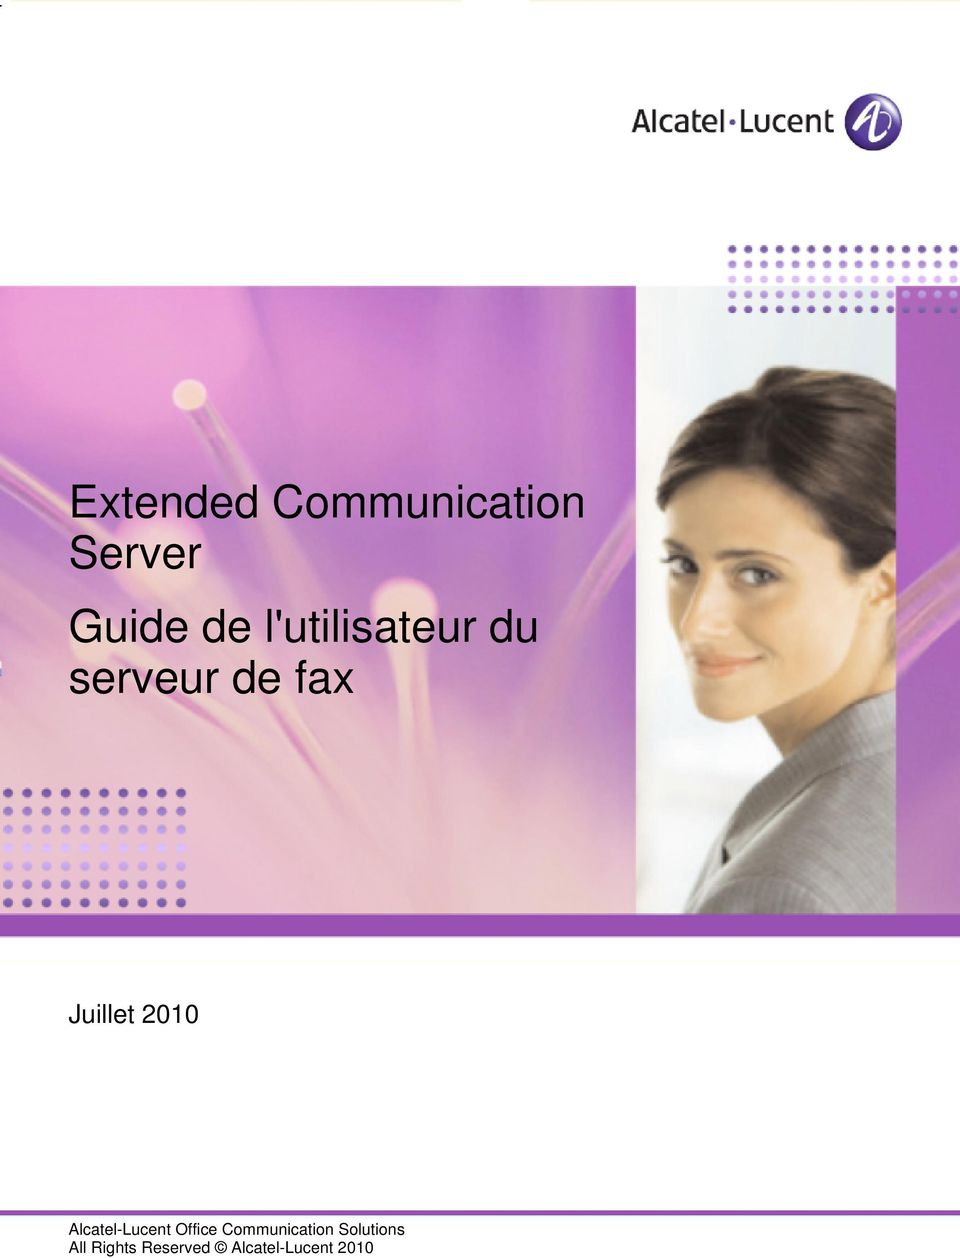 2010 Alcatel-Lucent Office Communication